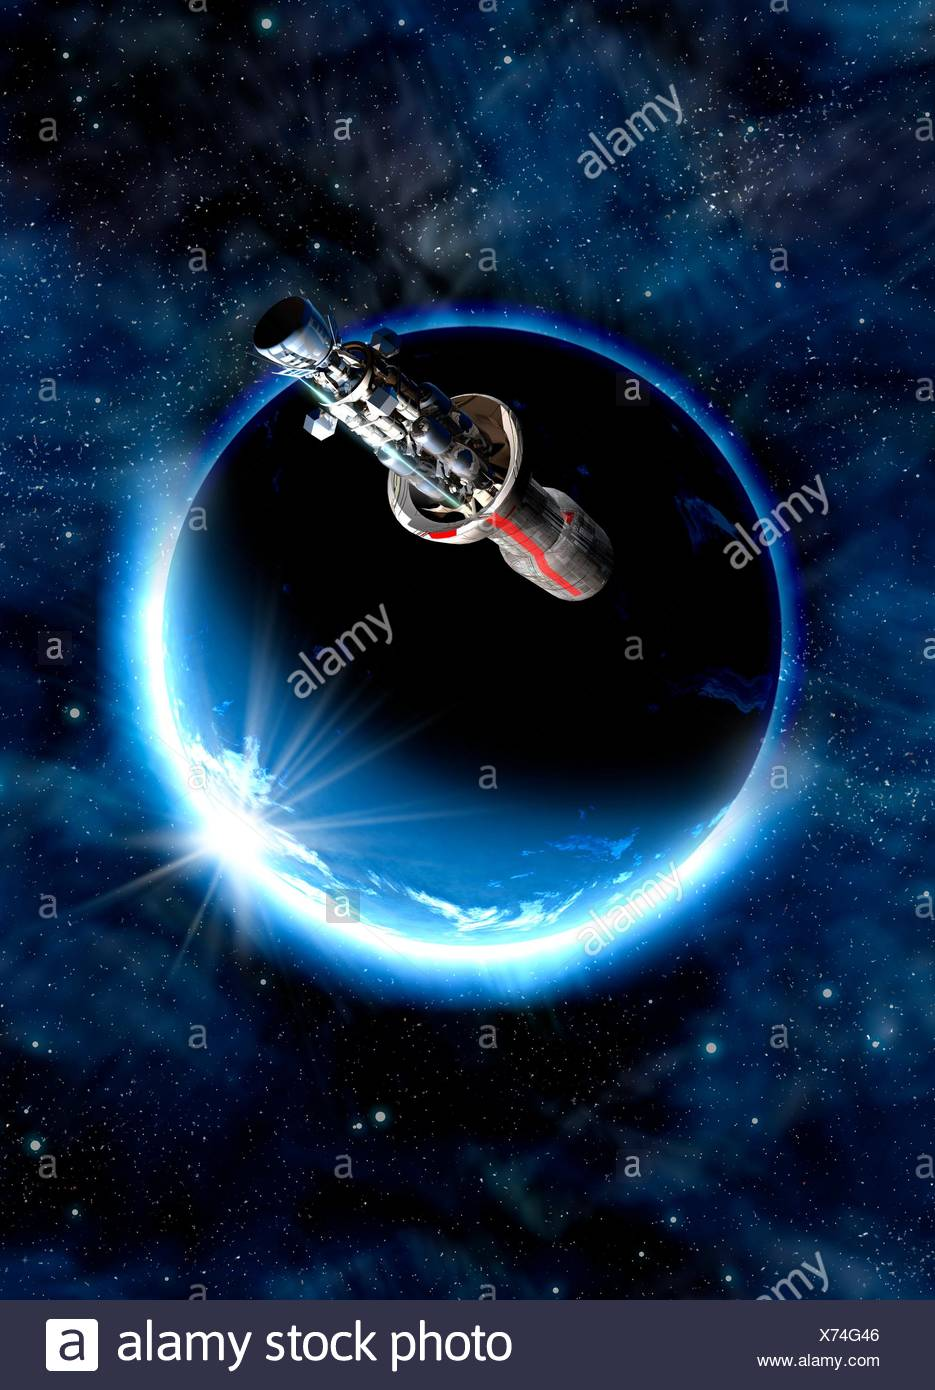 Spacecraft and planet, illustration. - Stock Image